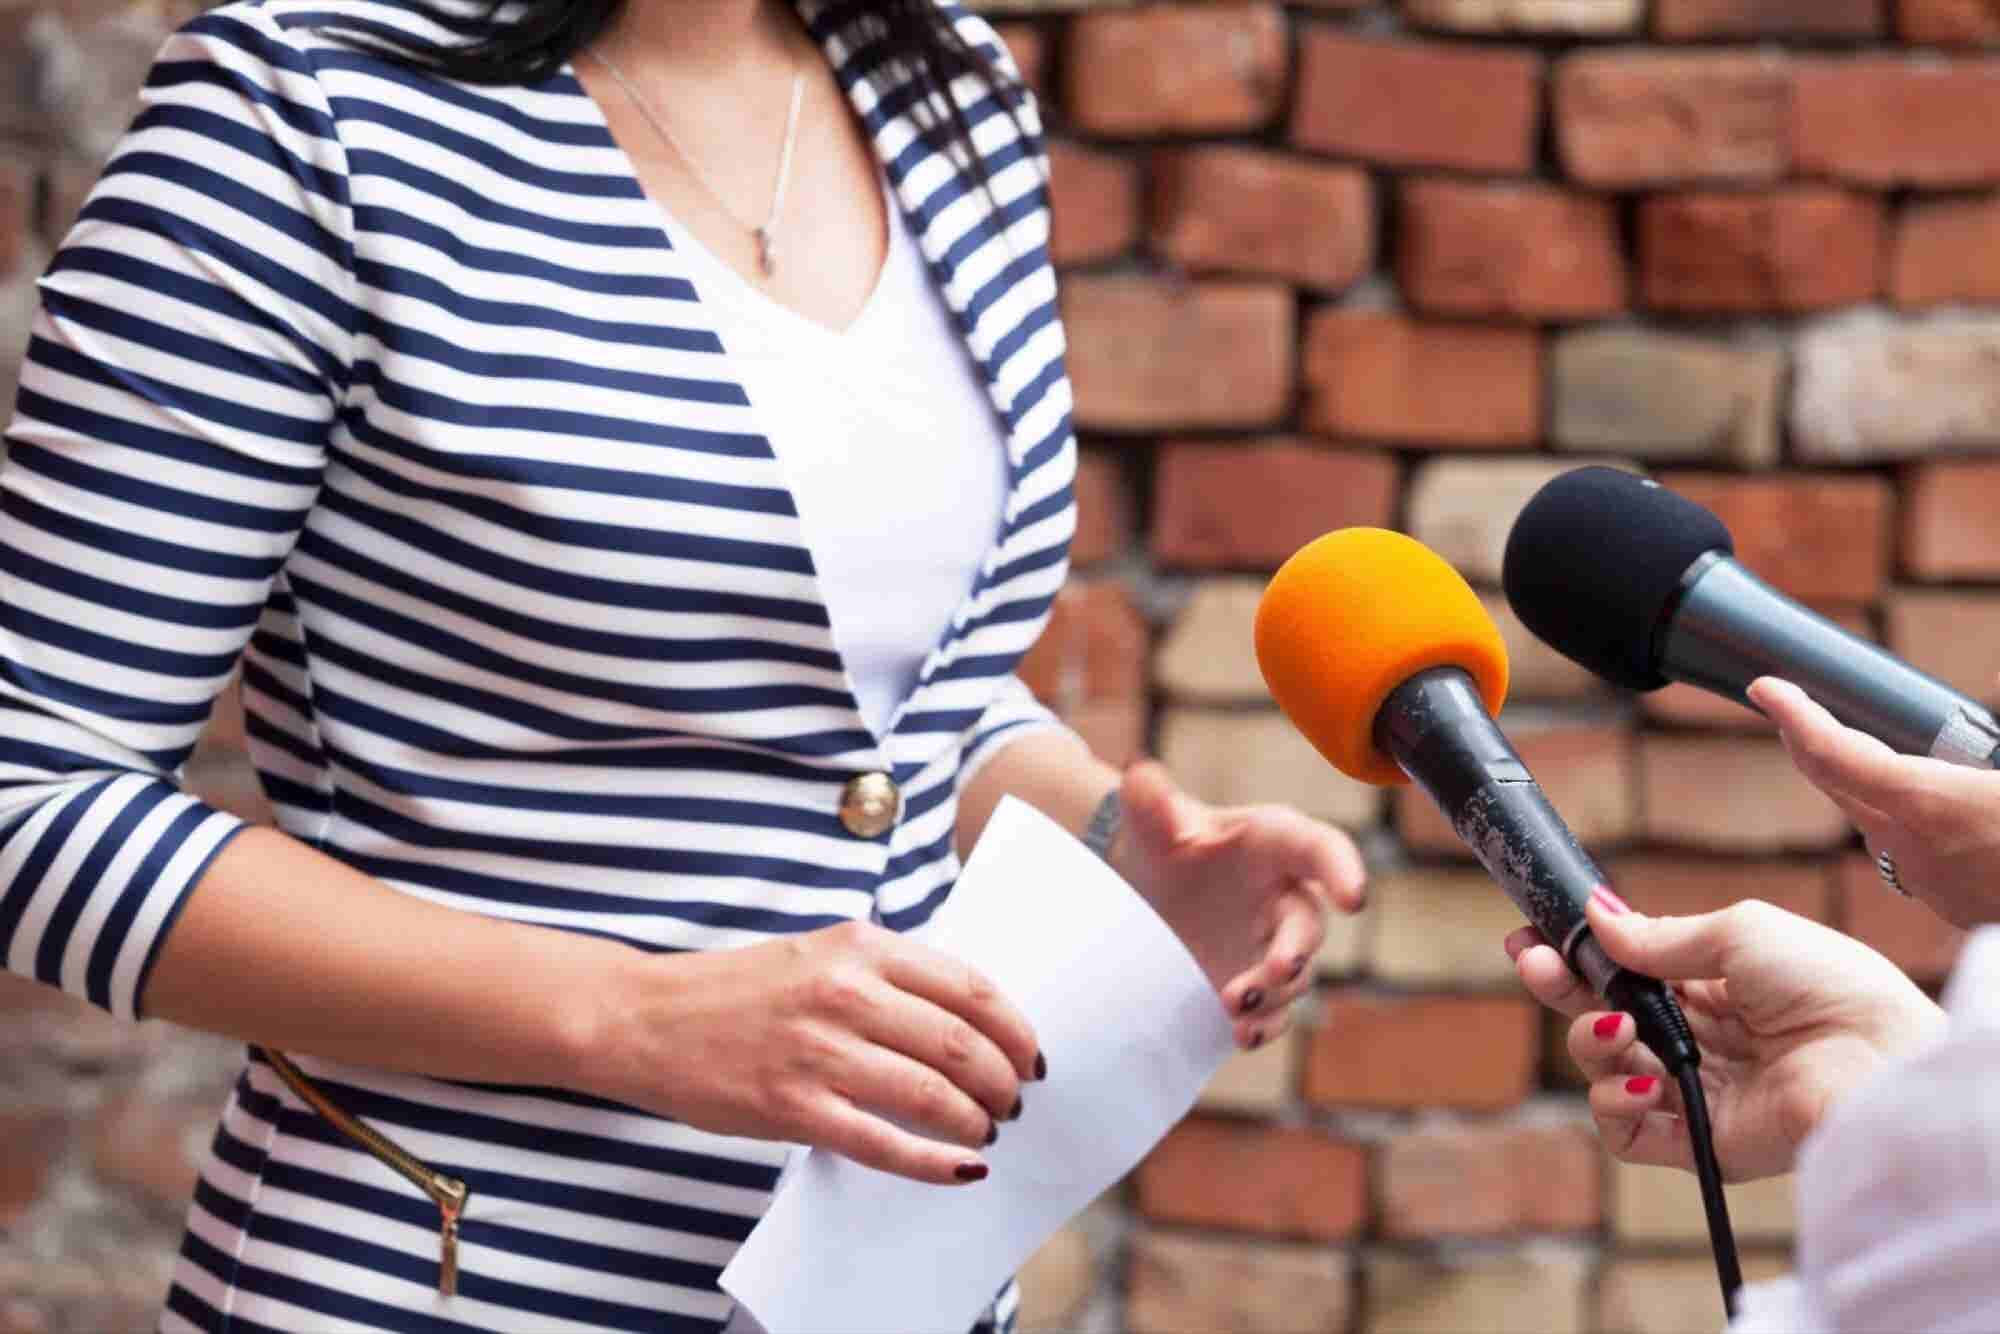 4 Ways To Master Media Interviews (Even If You've Been Burned Before)